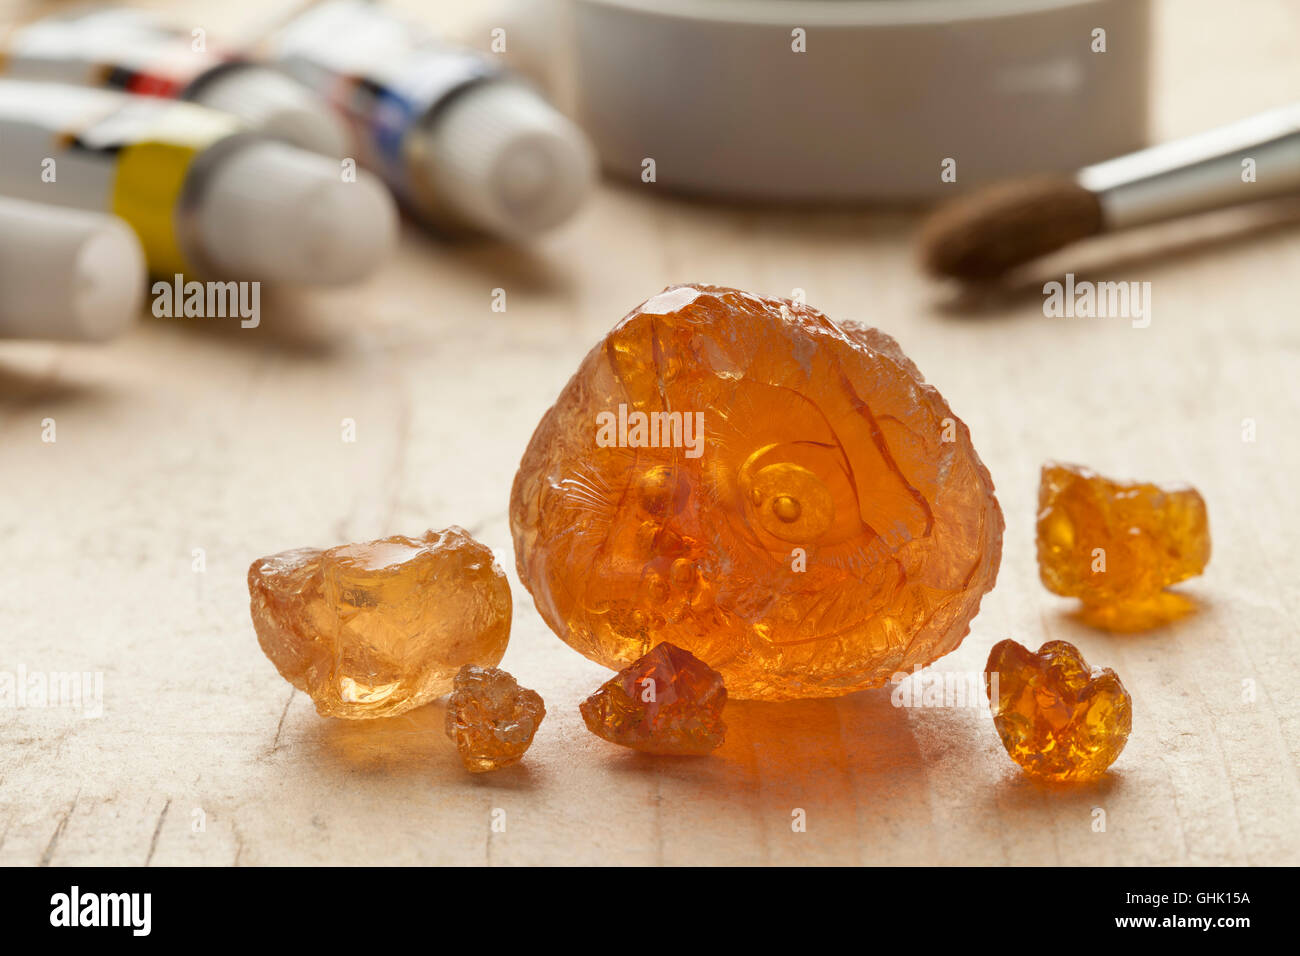 Pieces of Gum arabic with paint and paintbrushes in the background - Stock Image